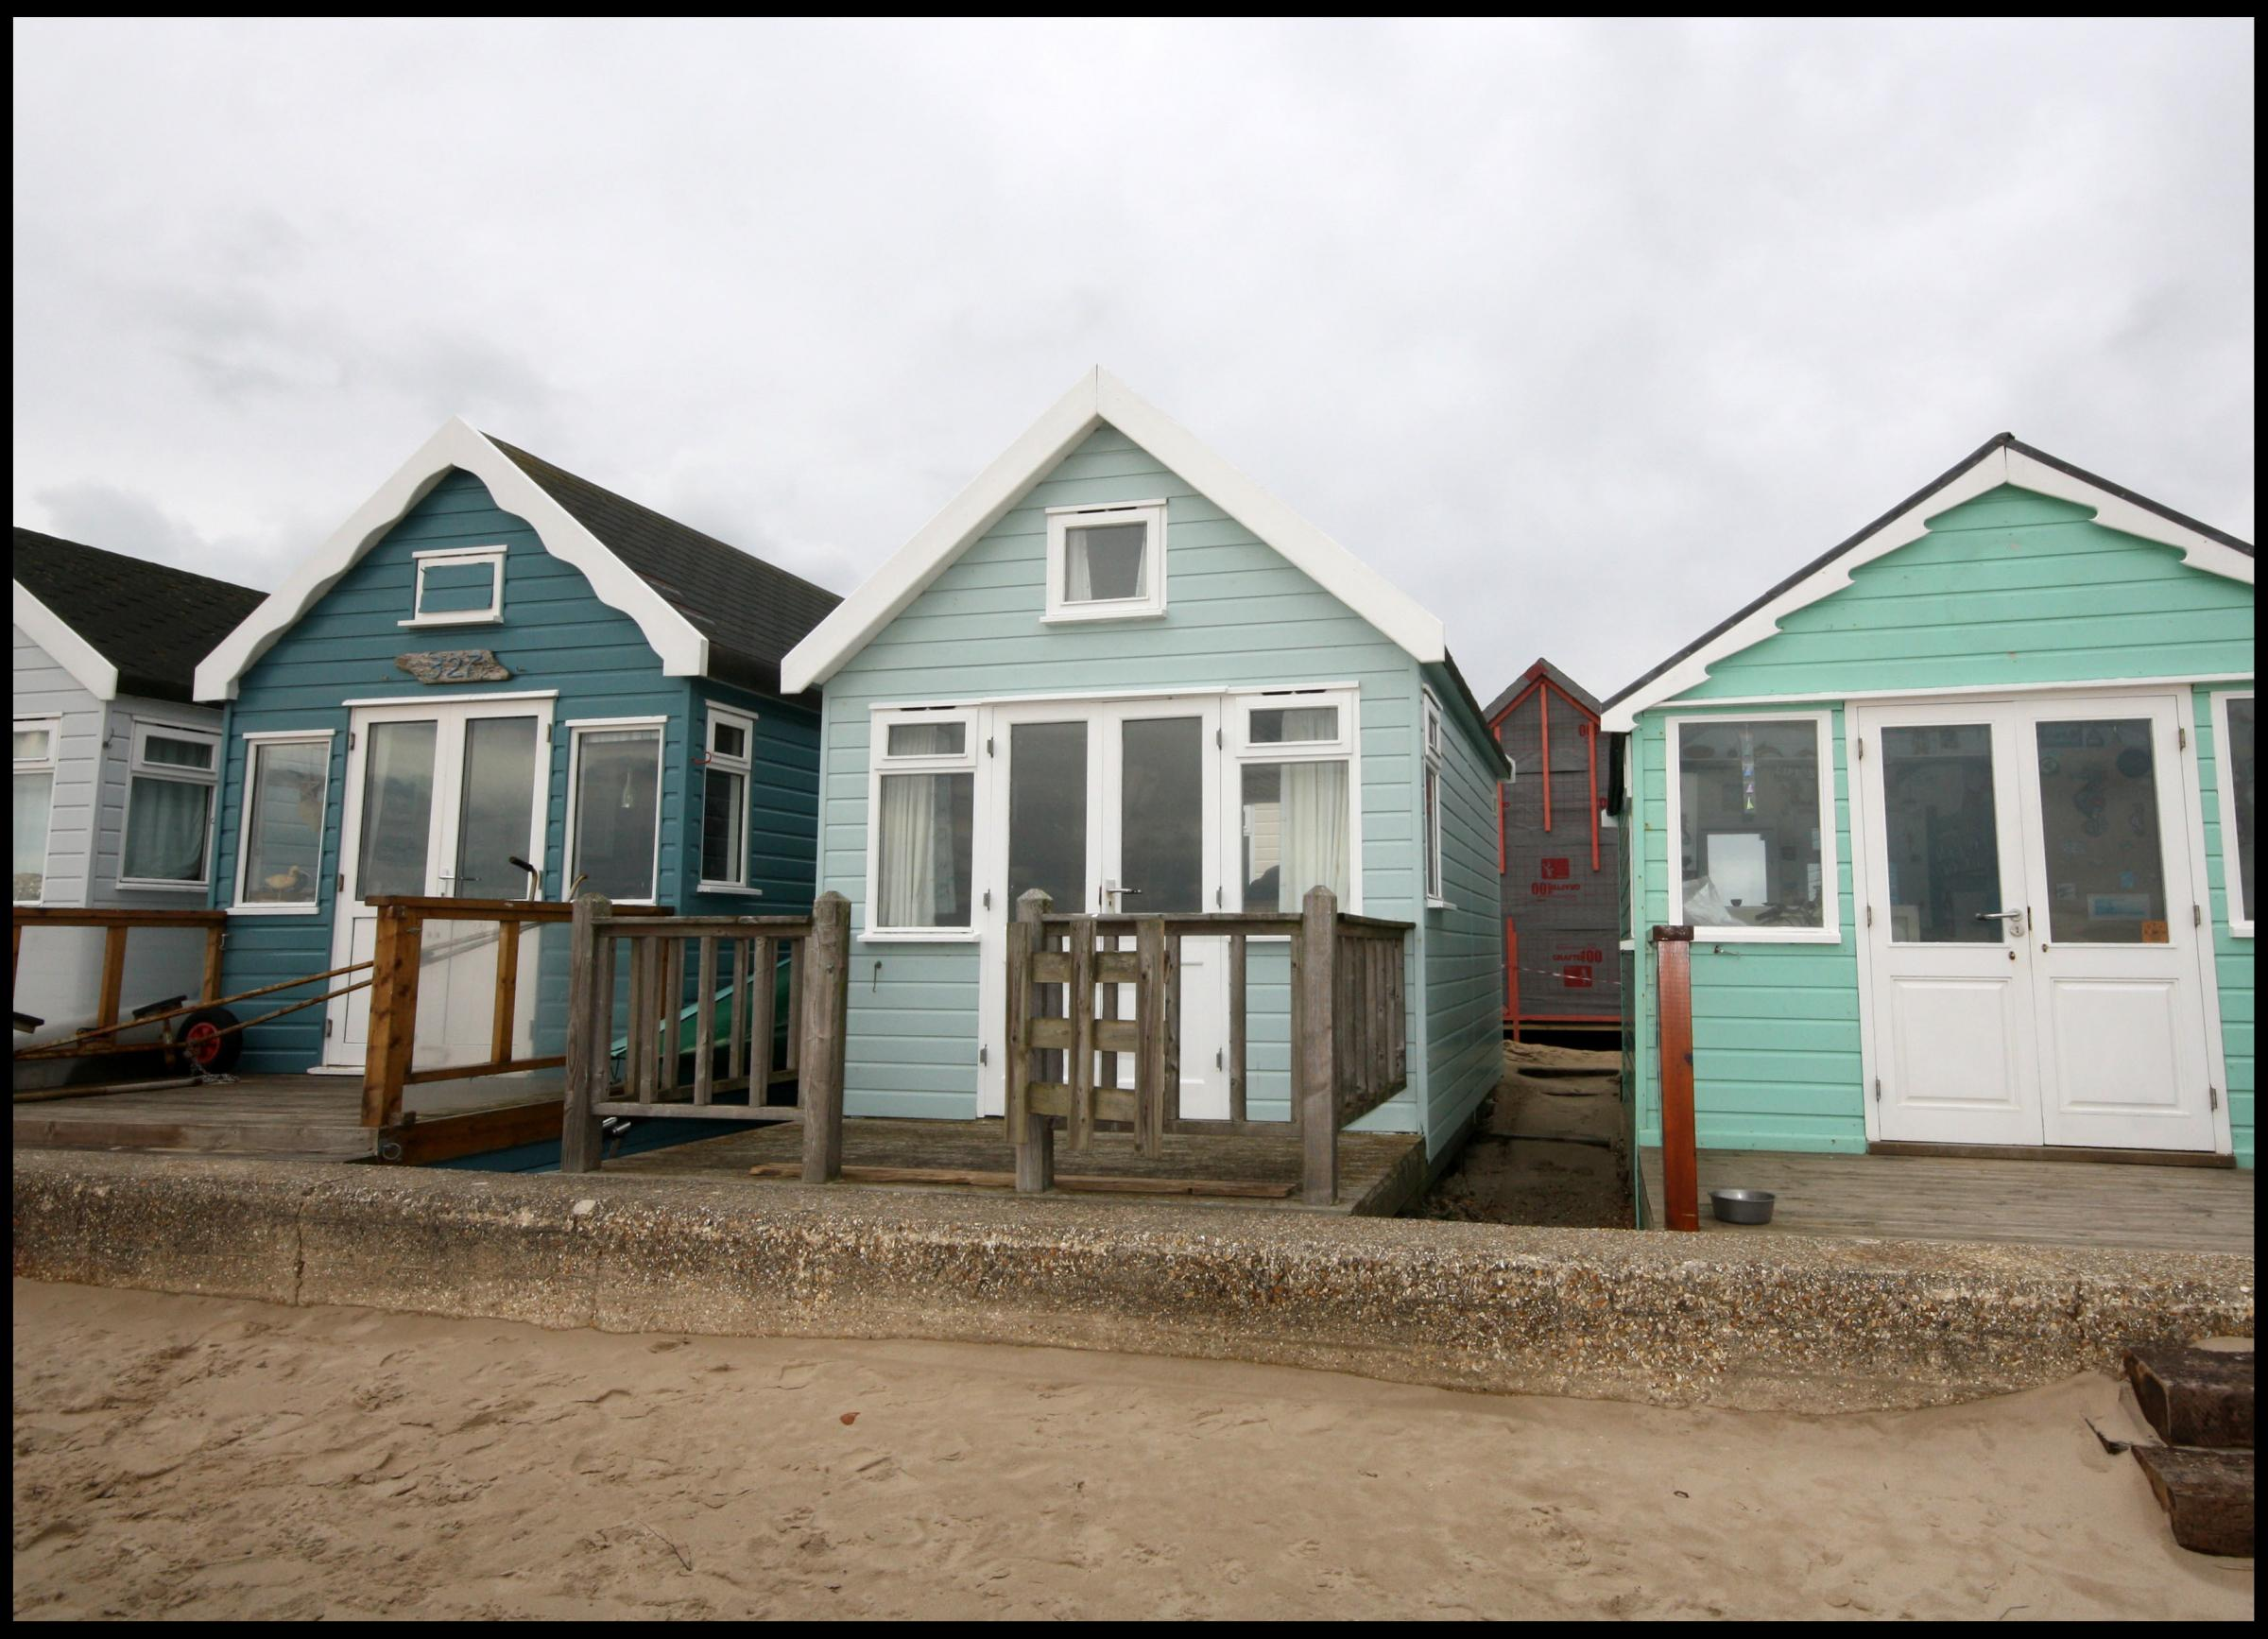 Hut 325 at Mudeford Sandbank is on the market for £275,000. Picture: Denisons estate agents